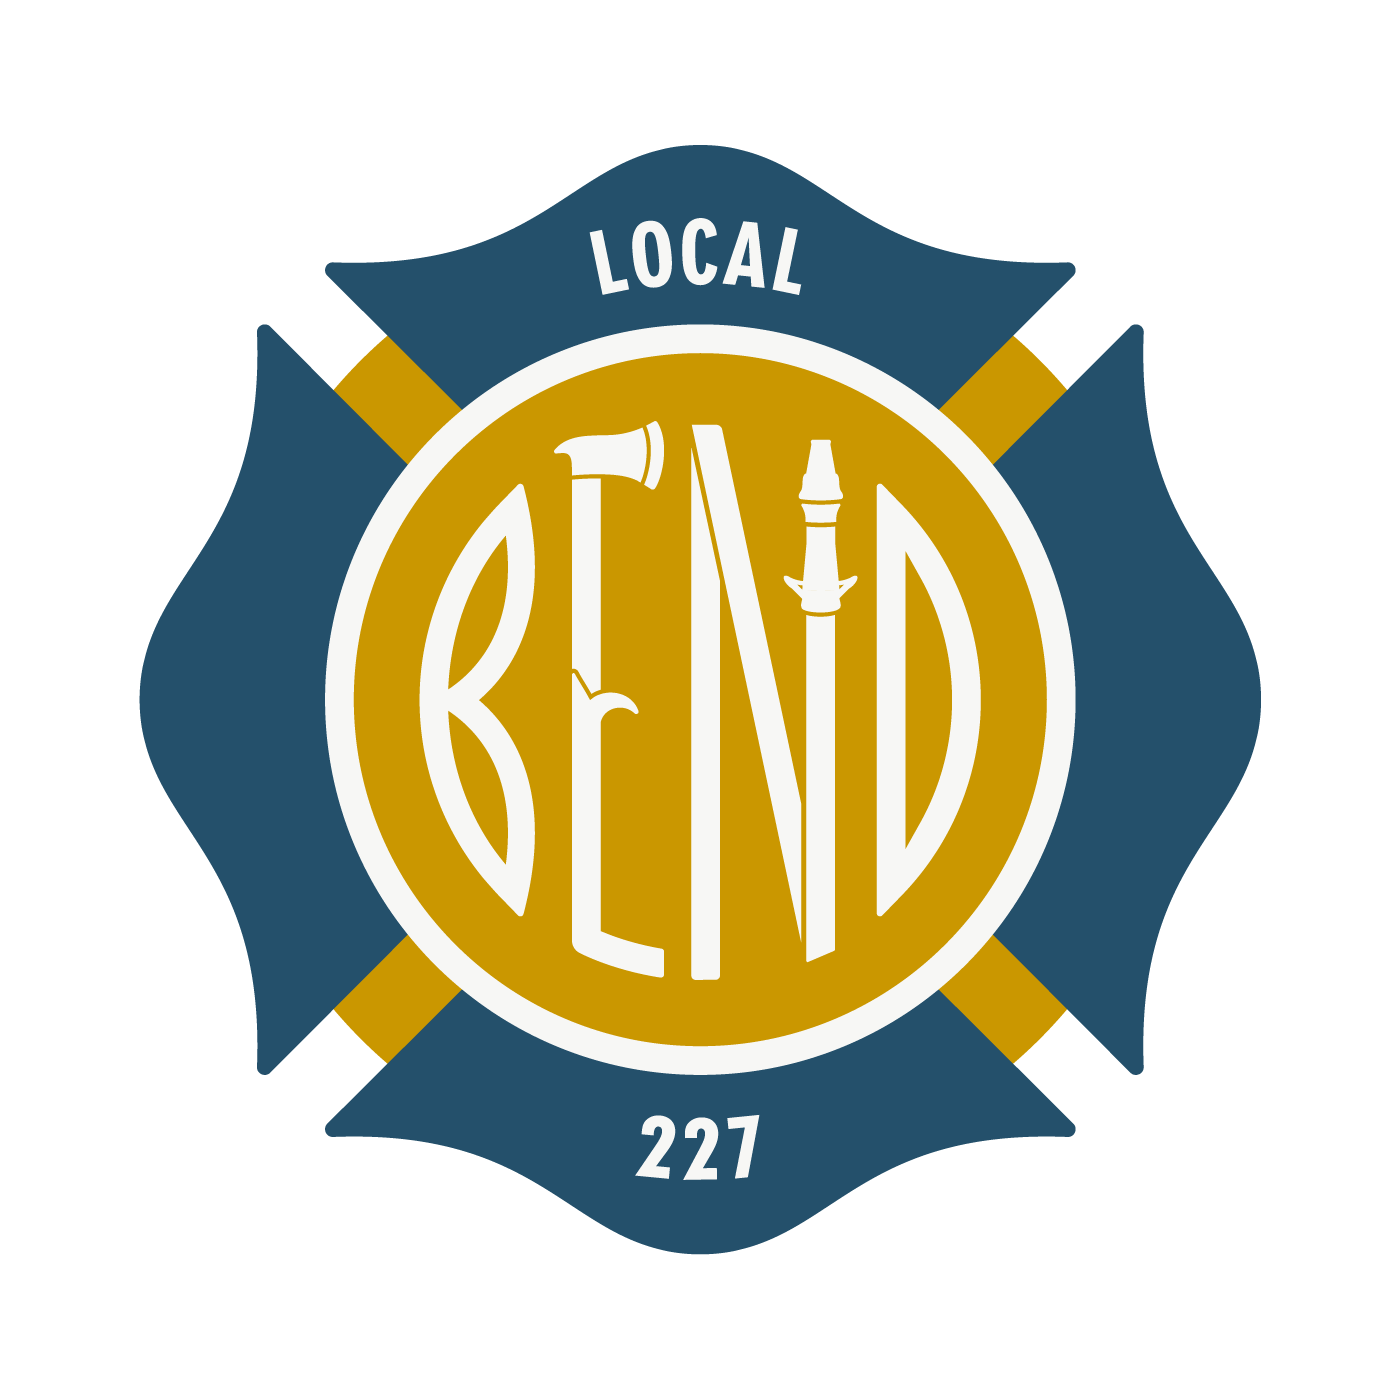 Bend Firefighters Local 227